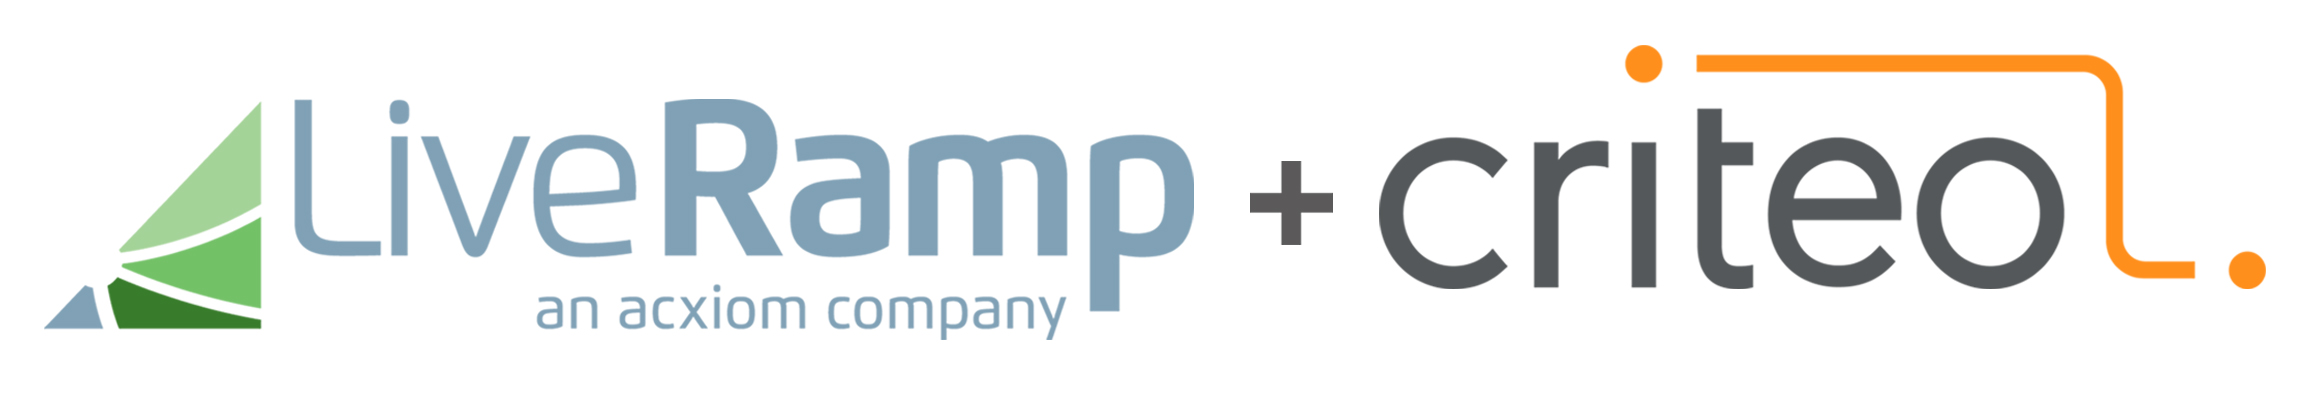 LiveRamp and Criteo Partner to Enhance Global People-Based Marketing Campaigns for Omnichannel Engagement